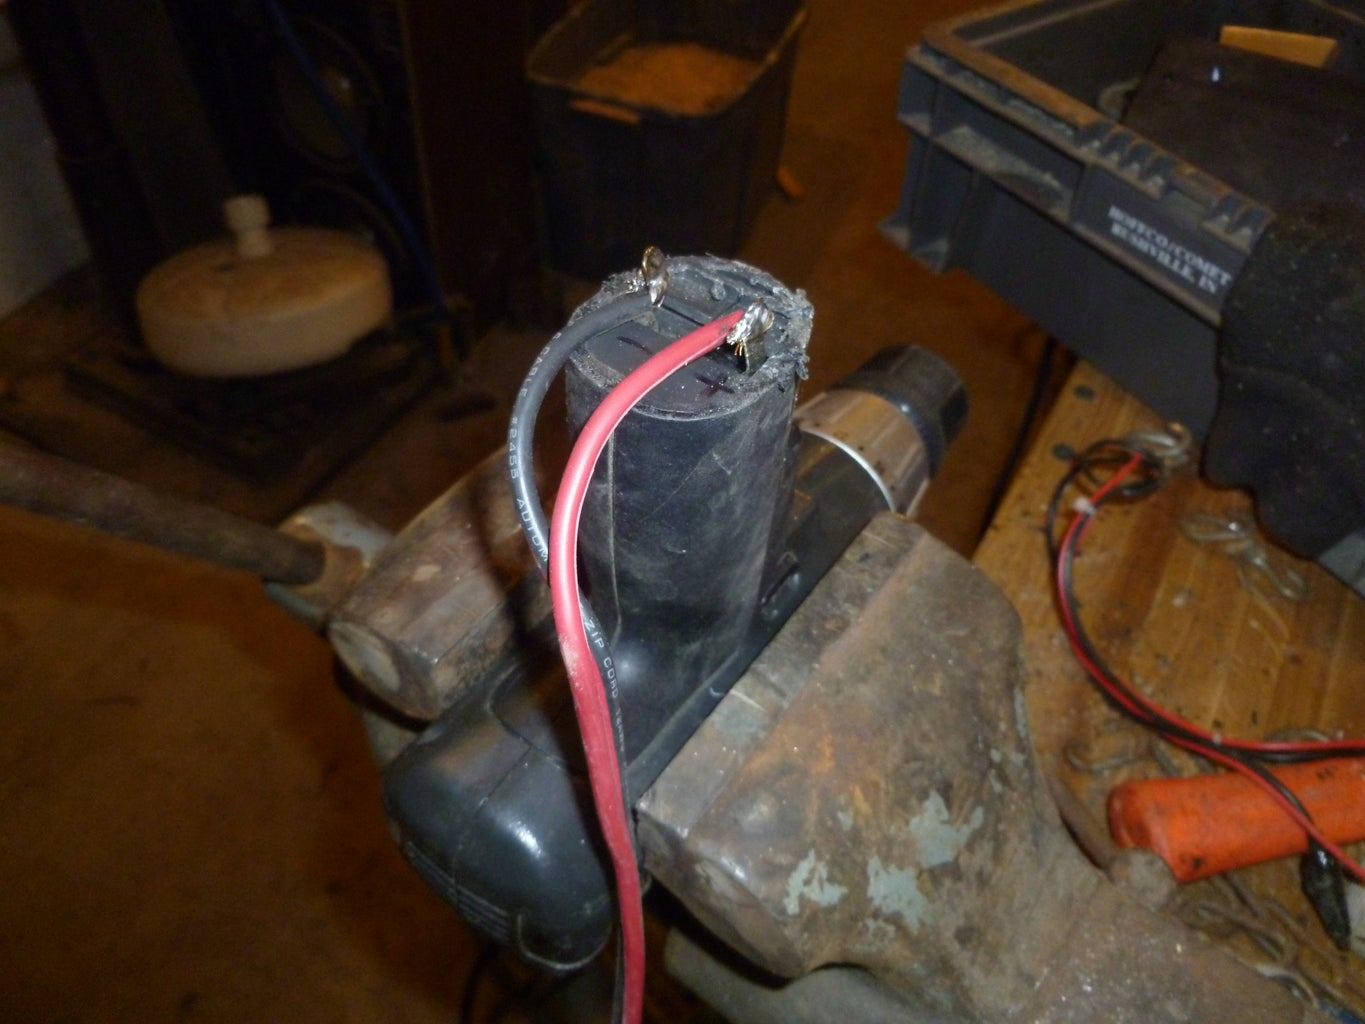 Solder the Red Wire to the + Terminal on the Drill and the Black to the - Terminal